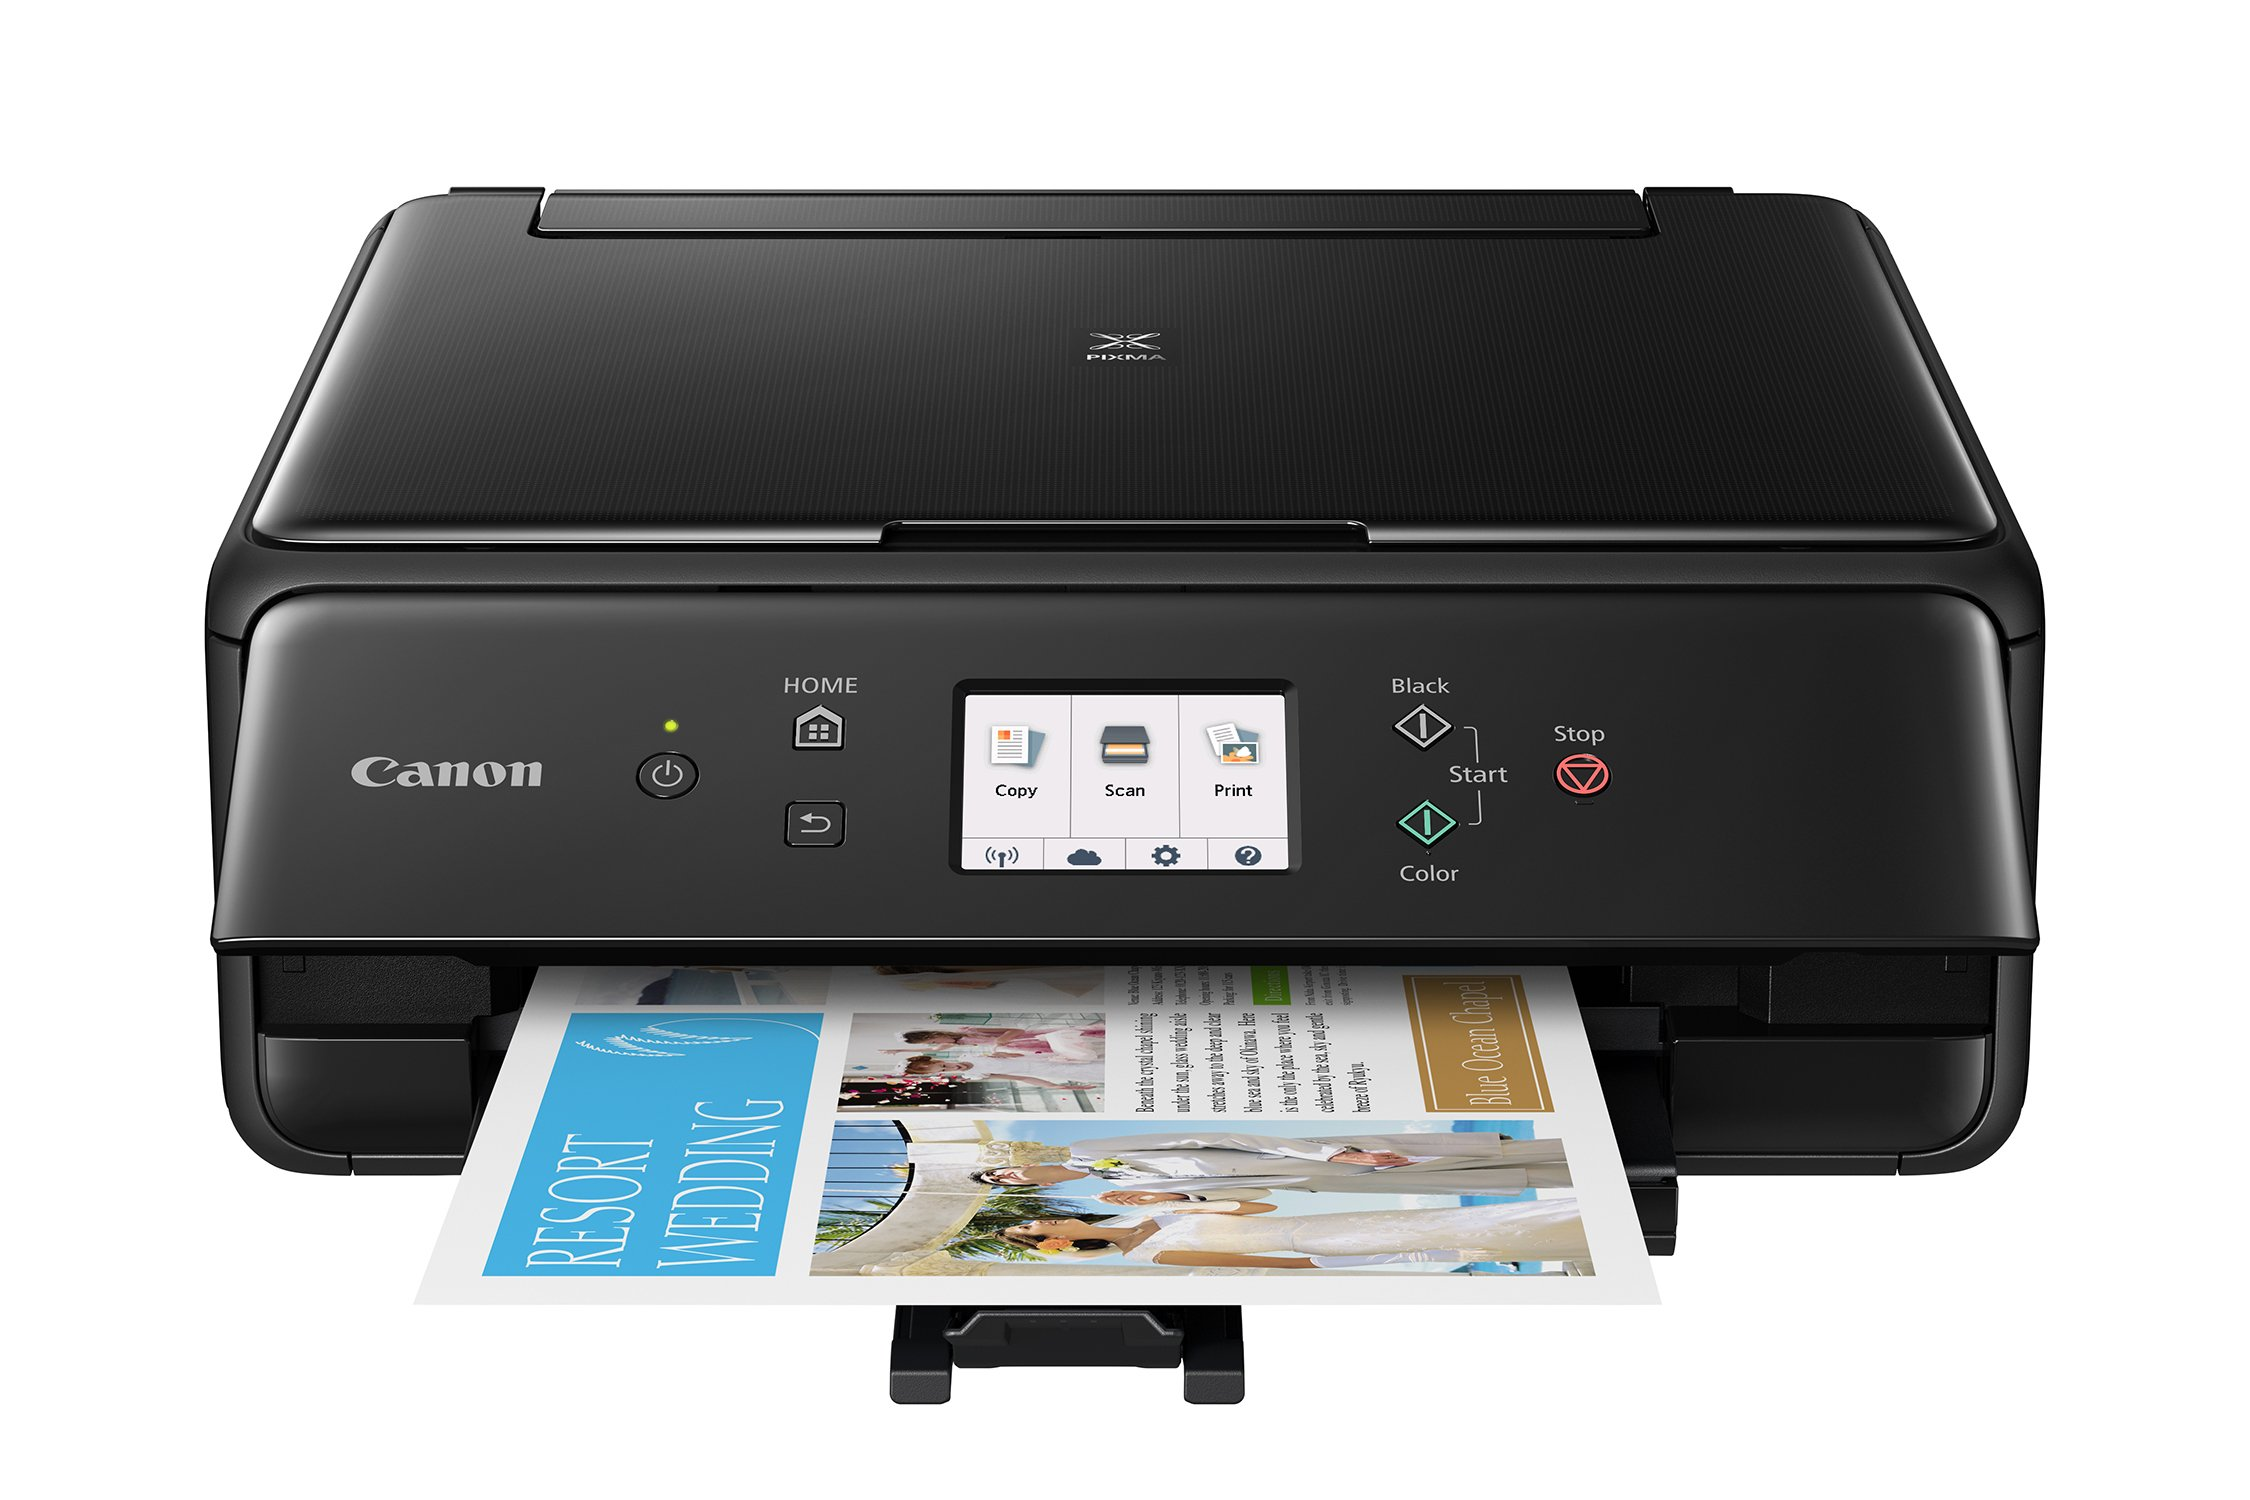 Canon TS6120 Wireless All-In-One Printer with Scanner and Copier: Mobile and Tablet Printing, with Airprint(TM) and Google Cloud Print compatible, Black by Canon